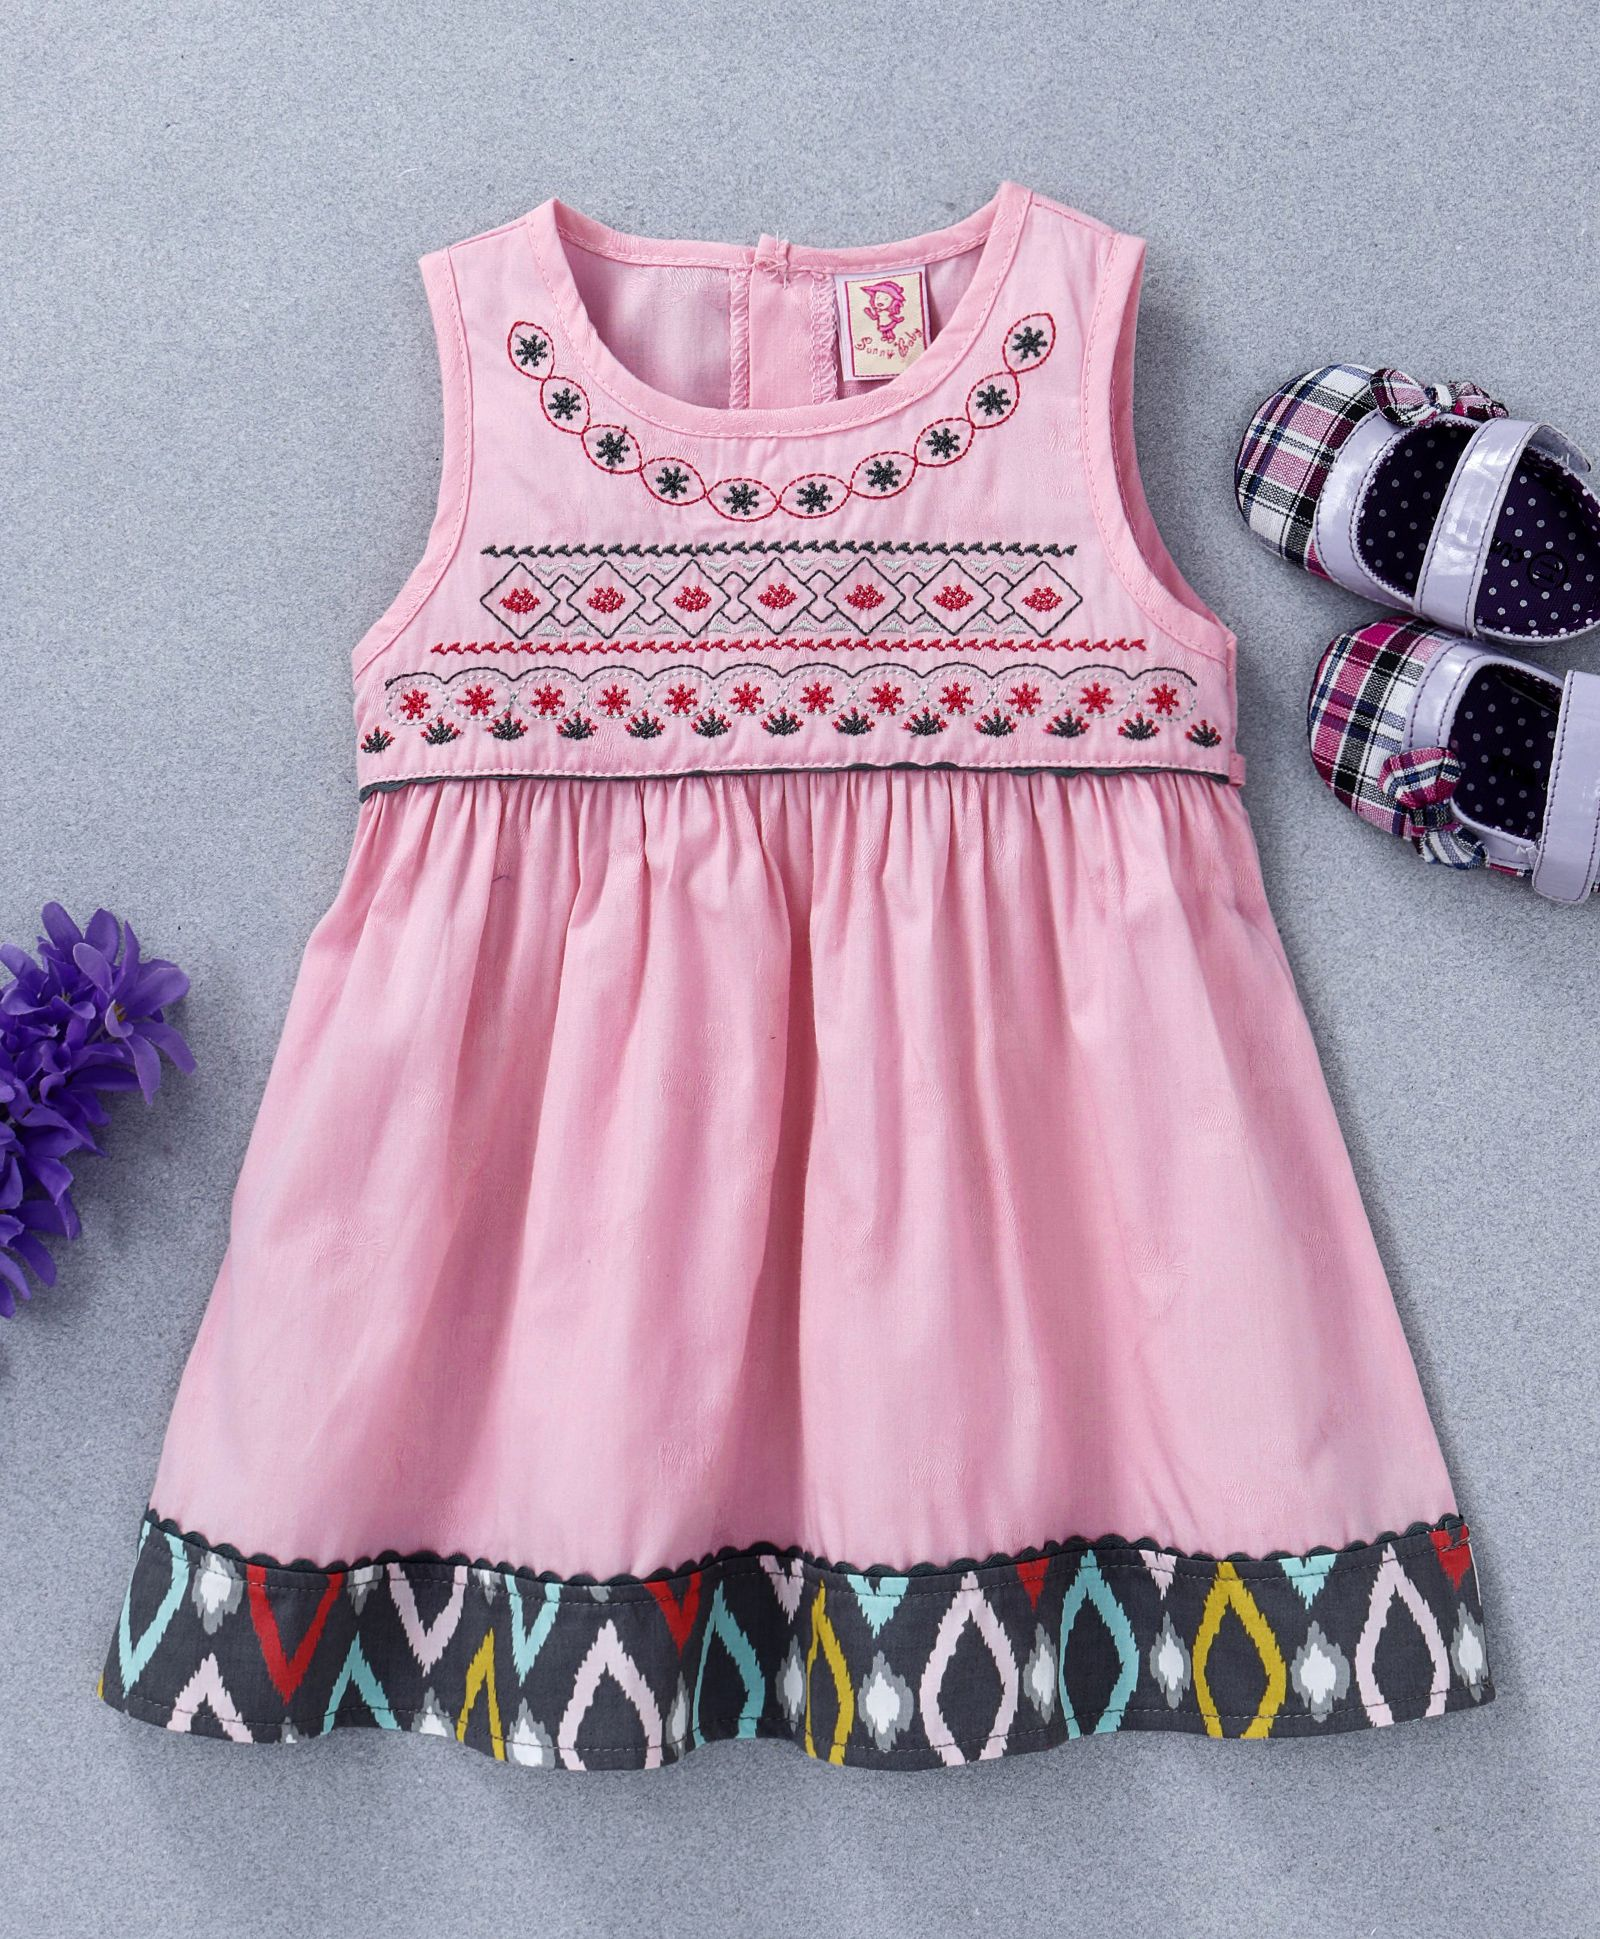 ccf3a6afea76 Buy Sunny Baby Embroidered Sleeveless Dress Pink for Girls (0-3 ...